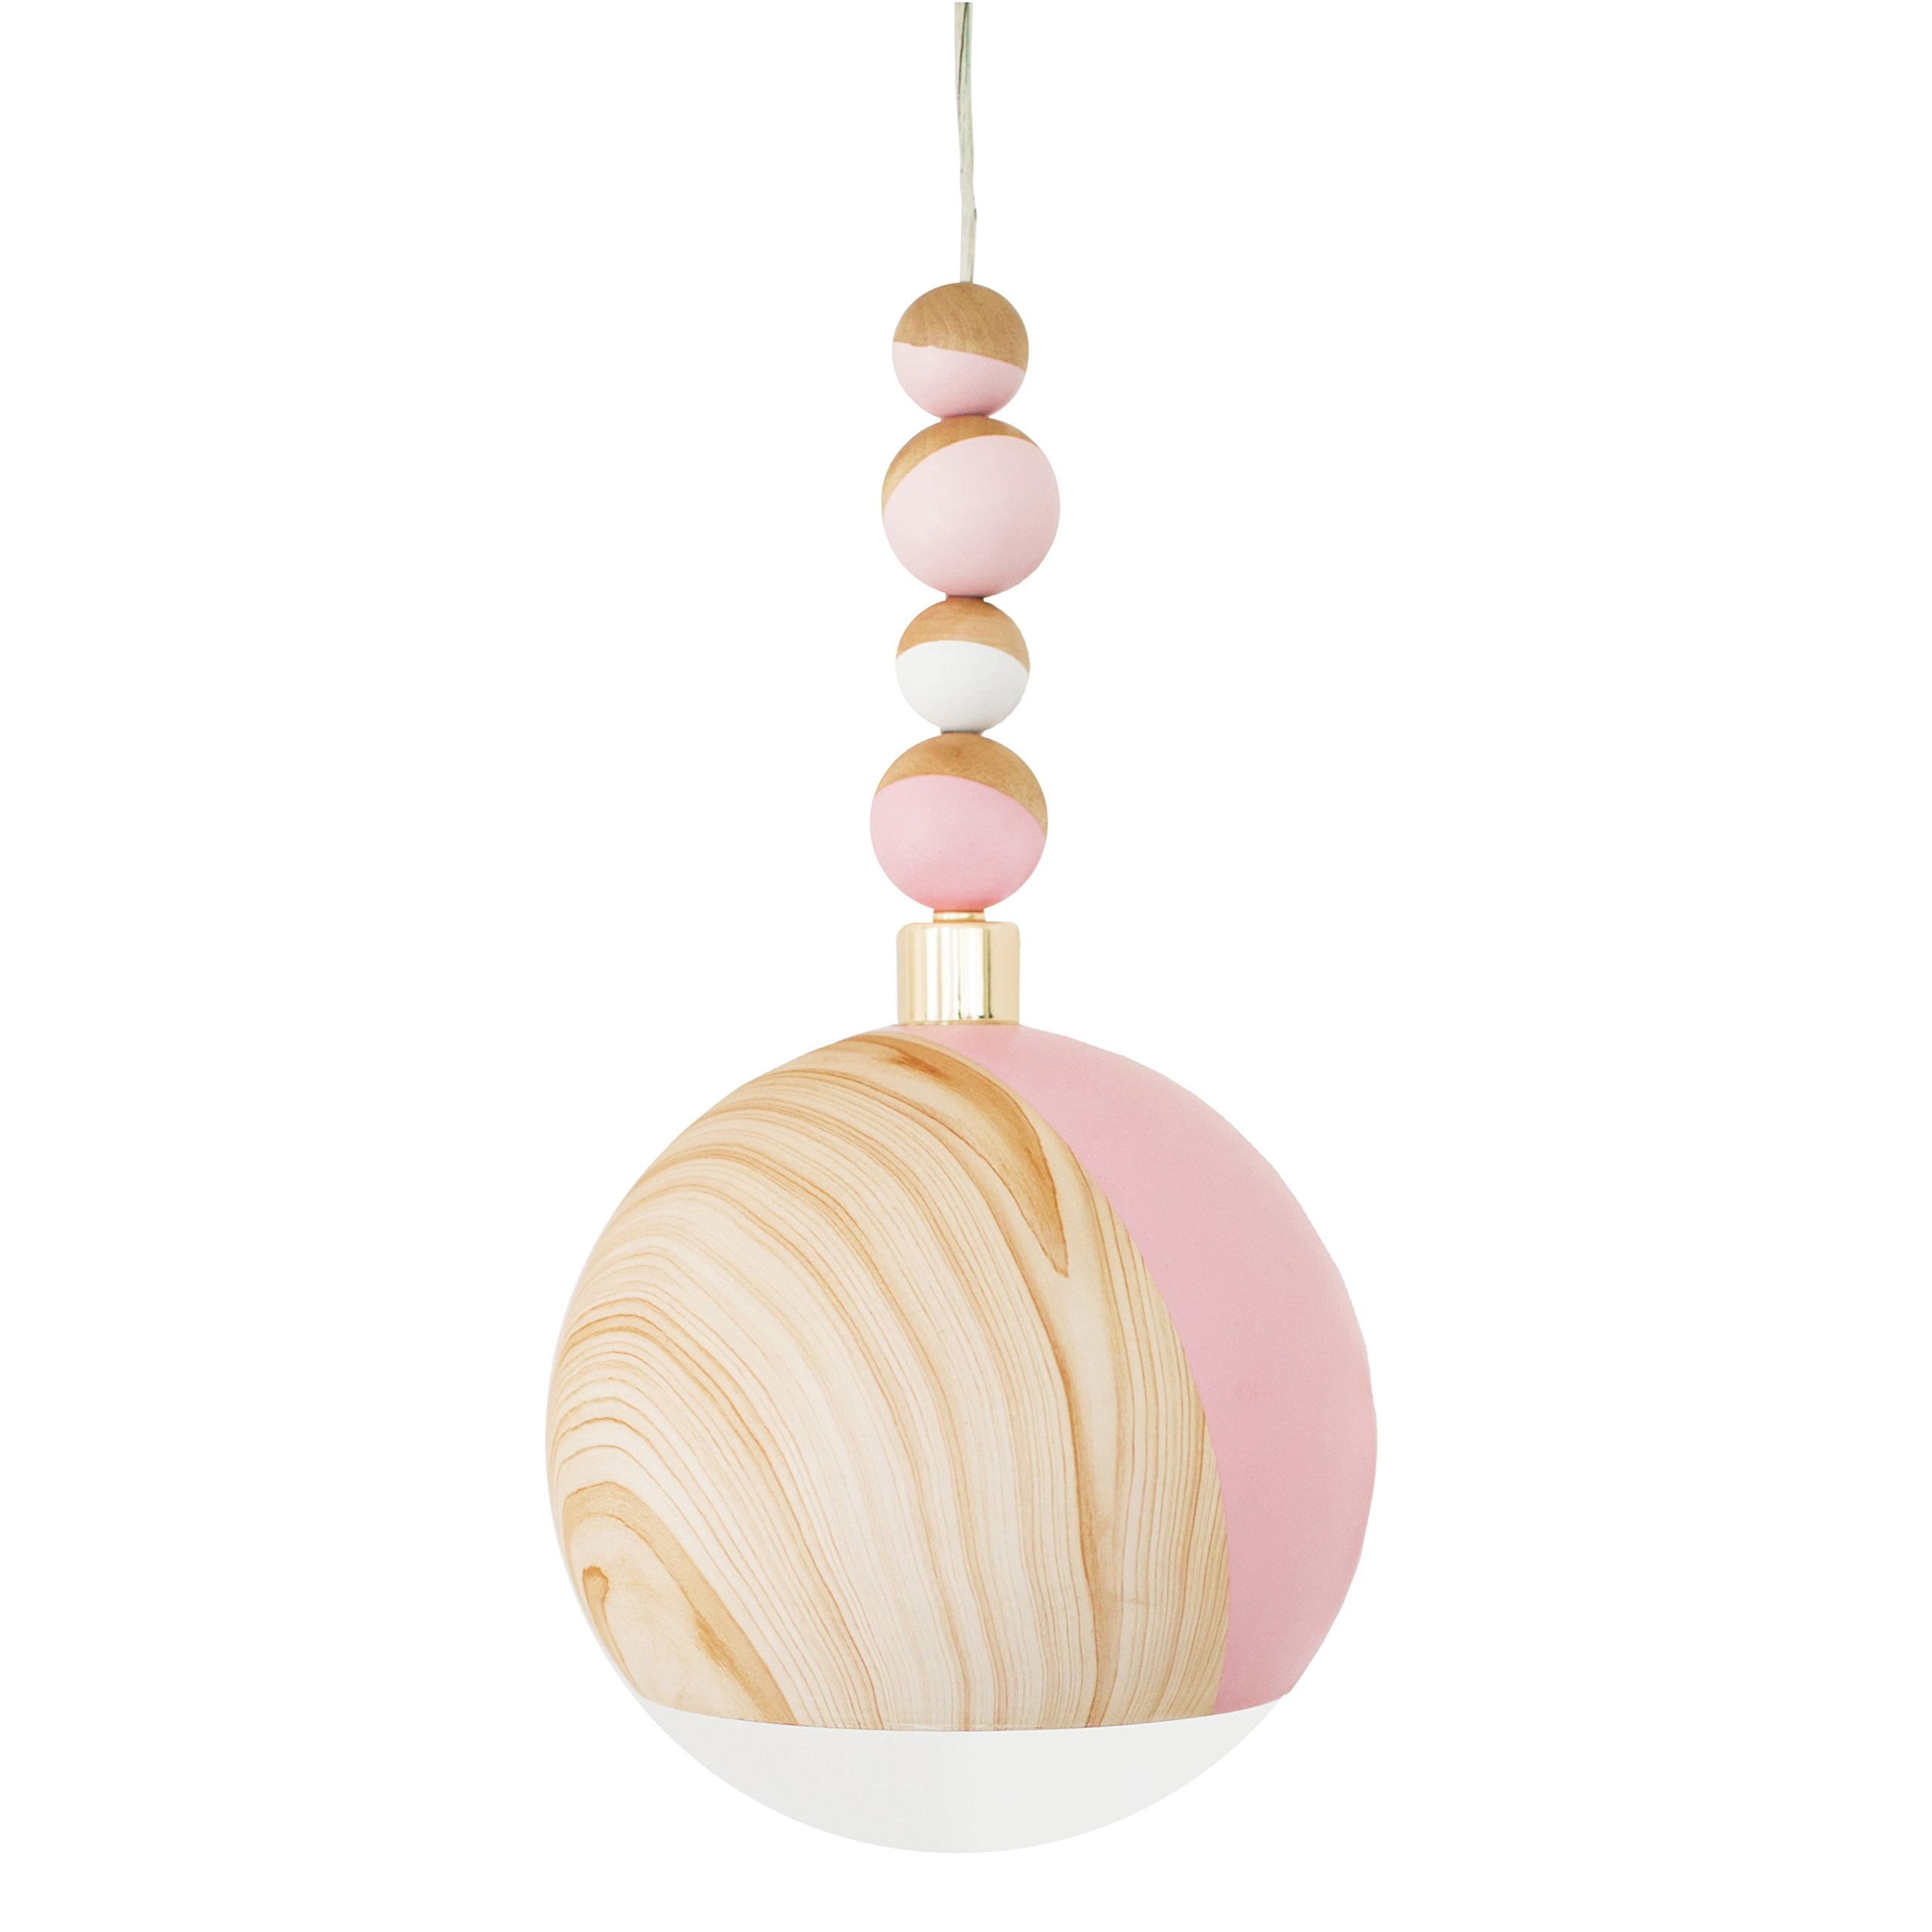 Petunia Pickle Bottom Dreaming in Dax Hanging Ceiling Pendant Light, Pink/White/Brown by Petunia Pickle Bottom